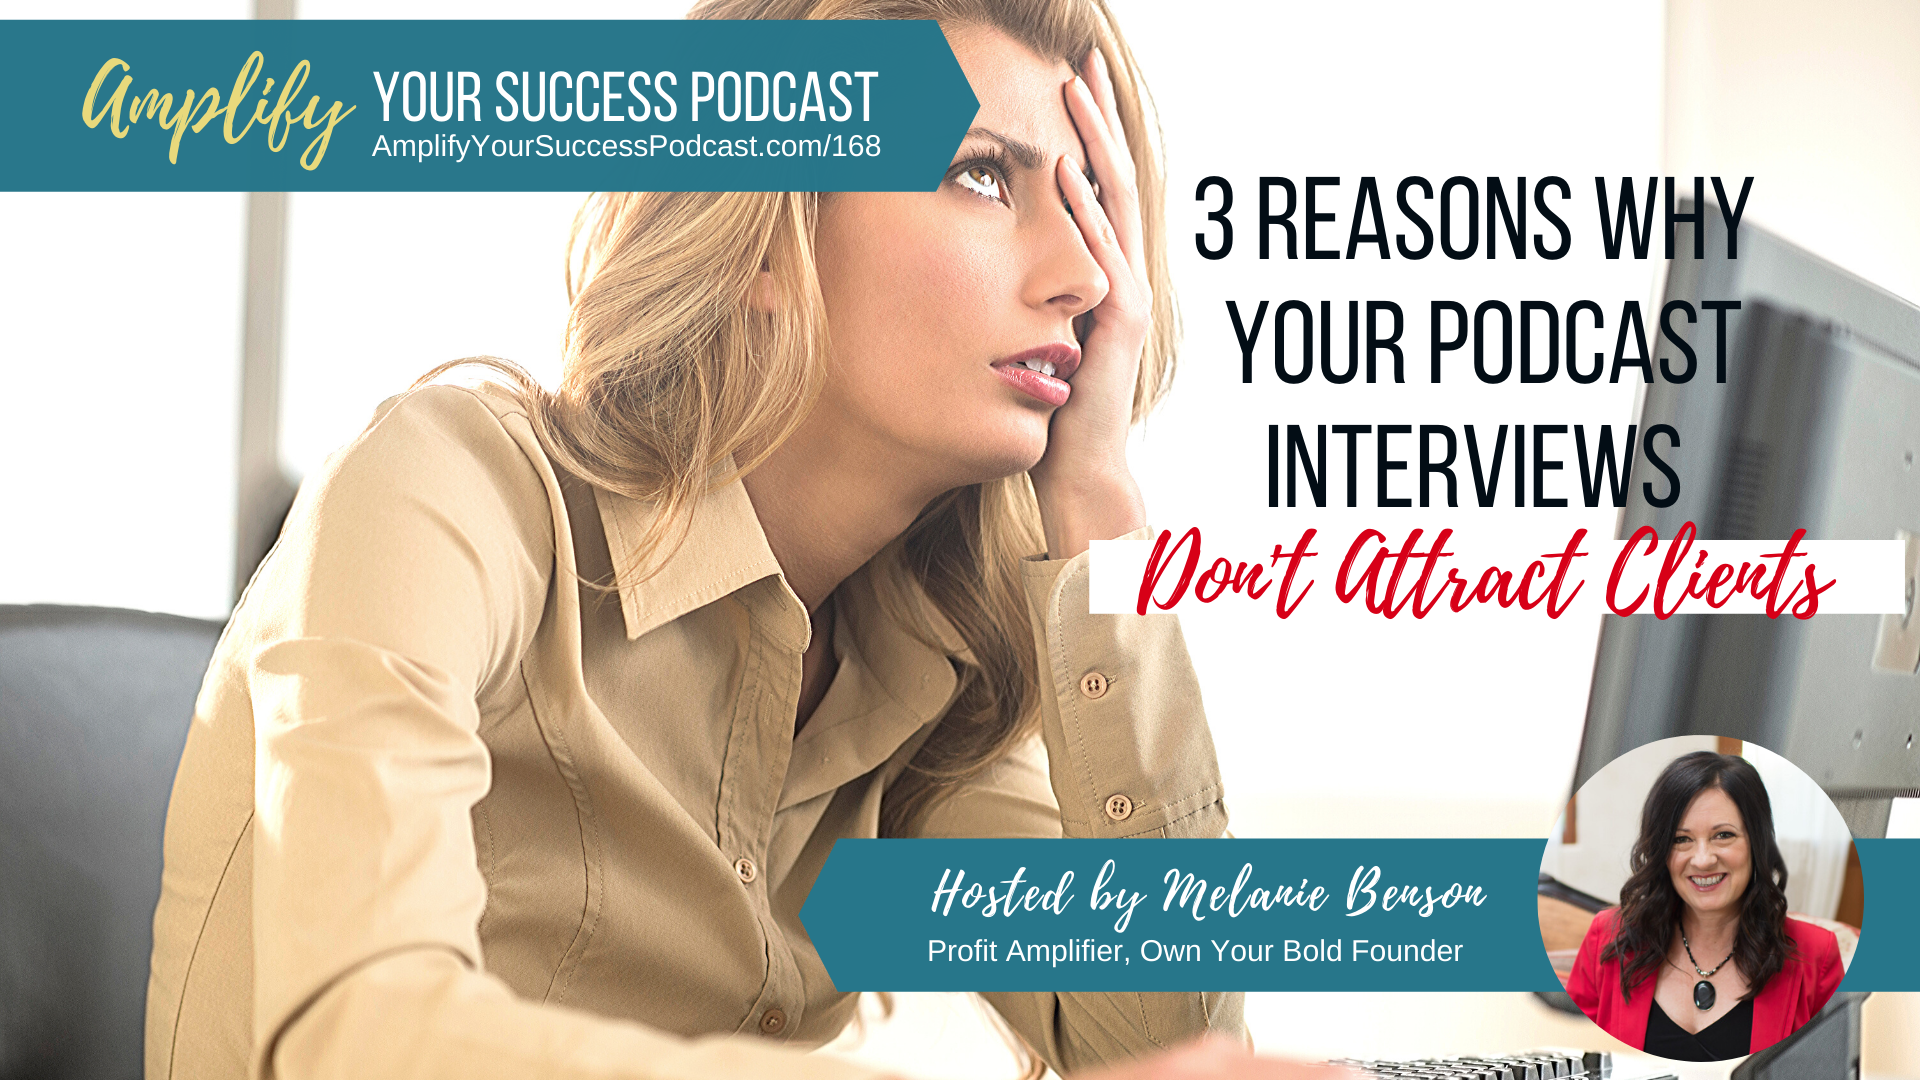 Three Reasons Why Your Podcast Interviews Don't Attract Clients